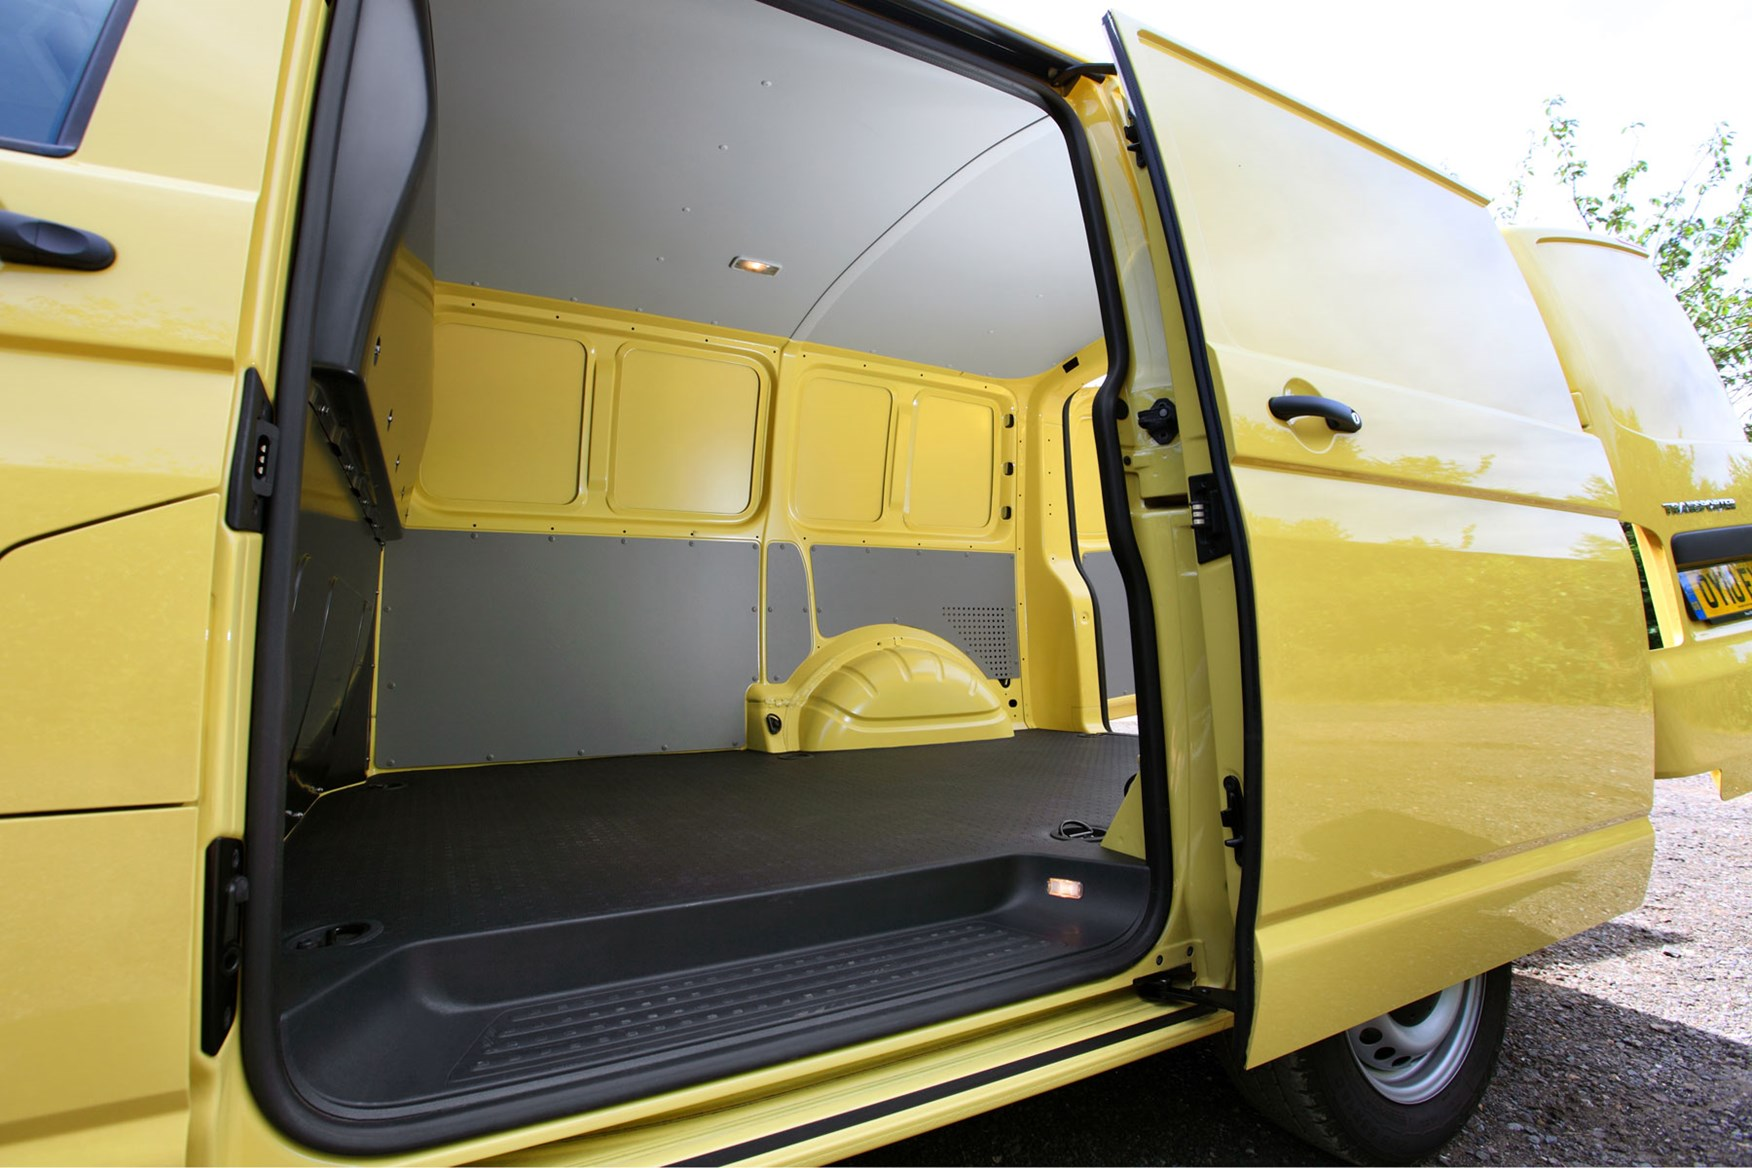 VW Transporter T5 (2010-2015) side door and load area